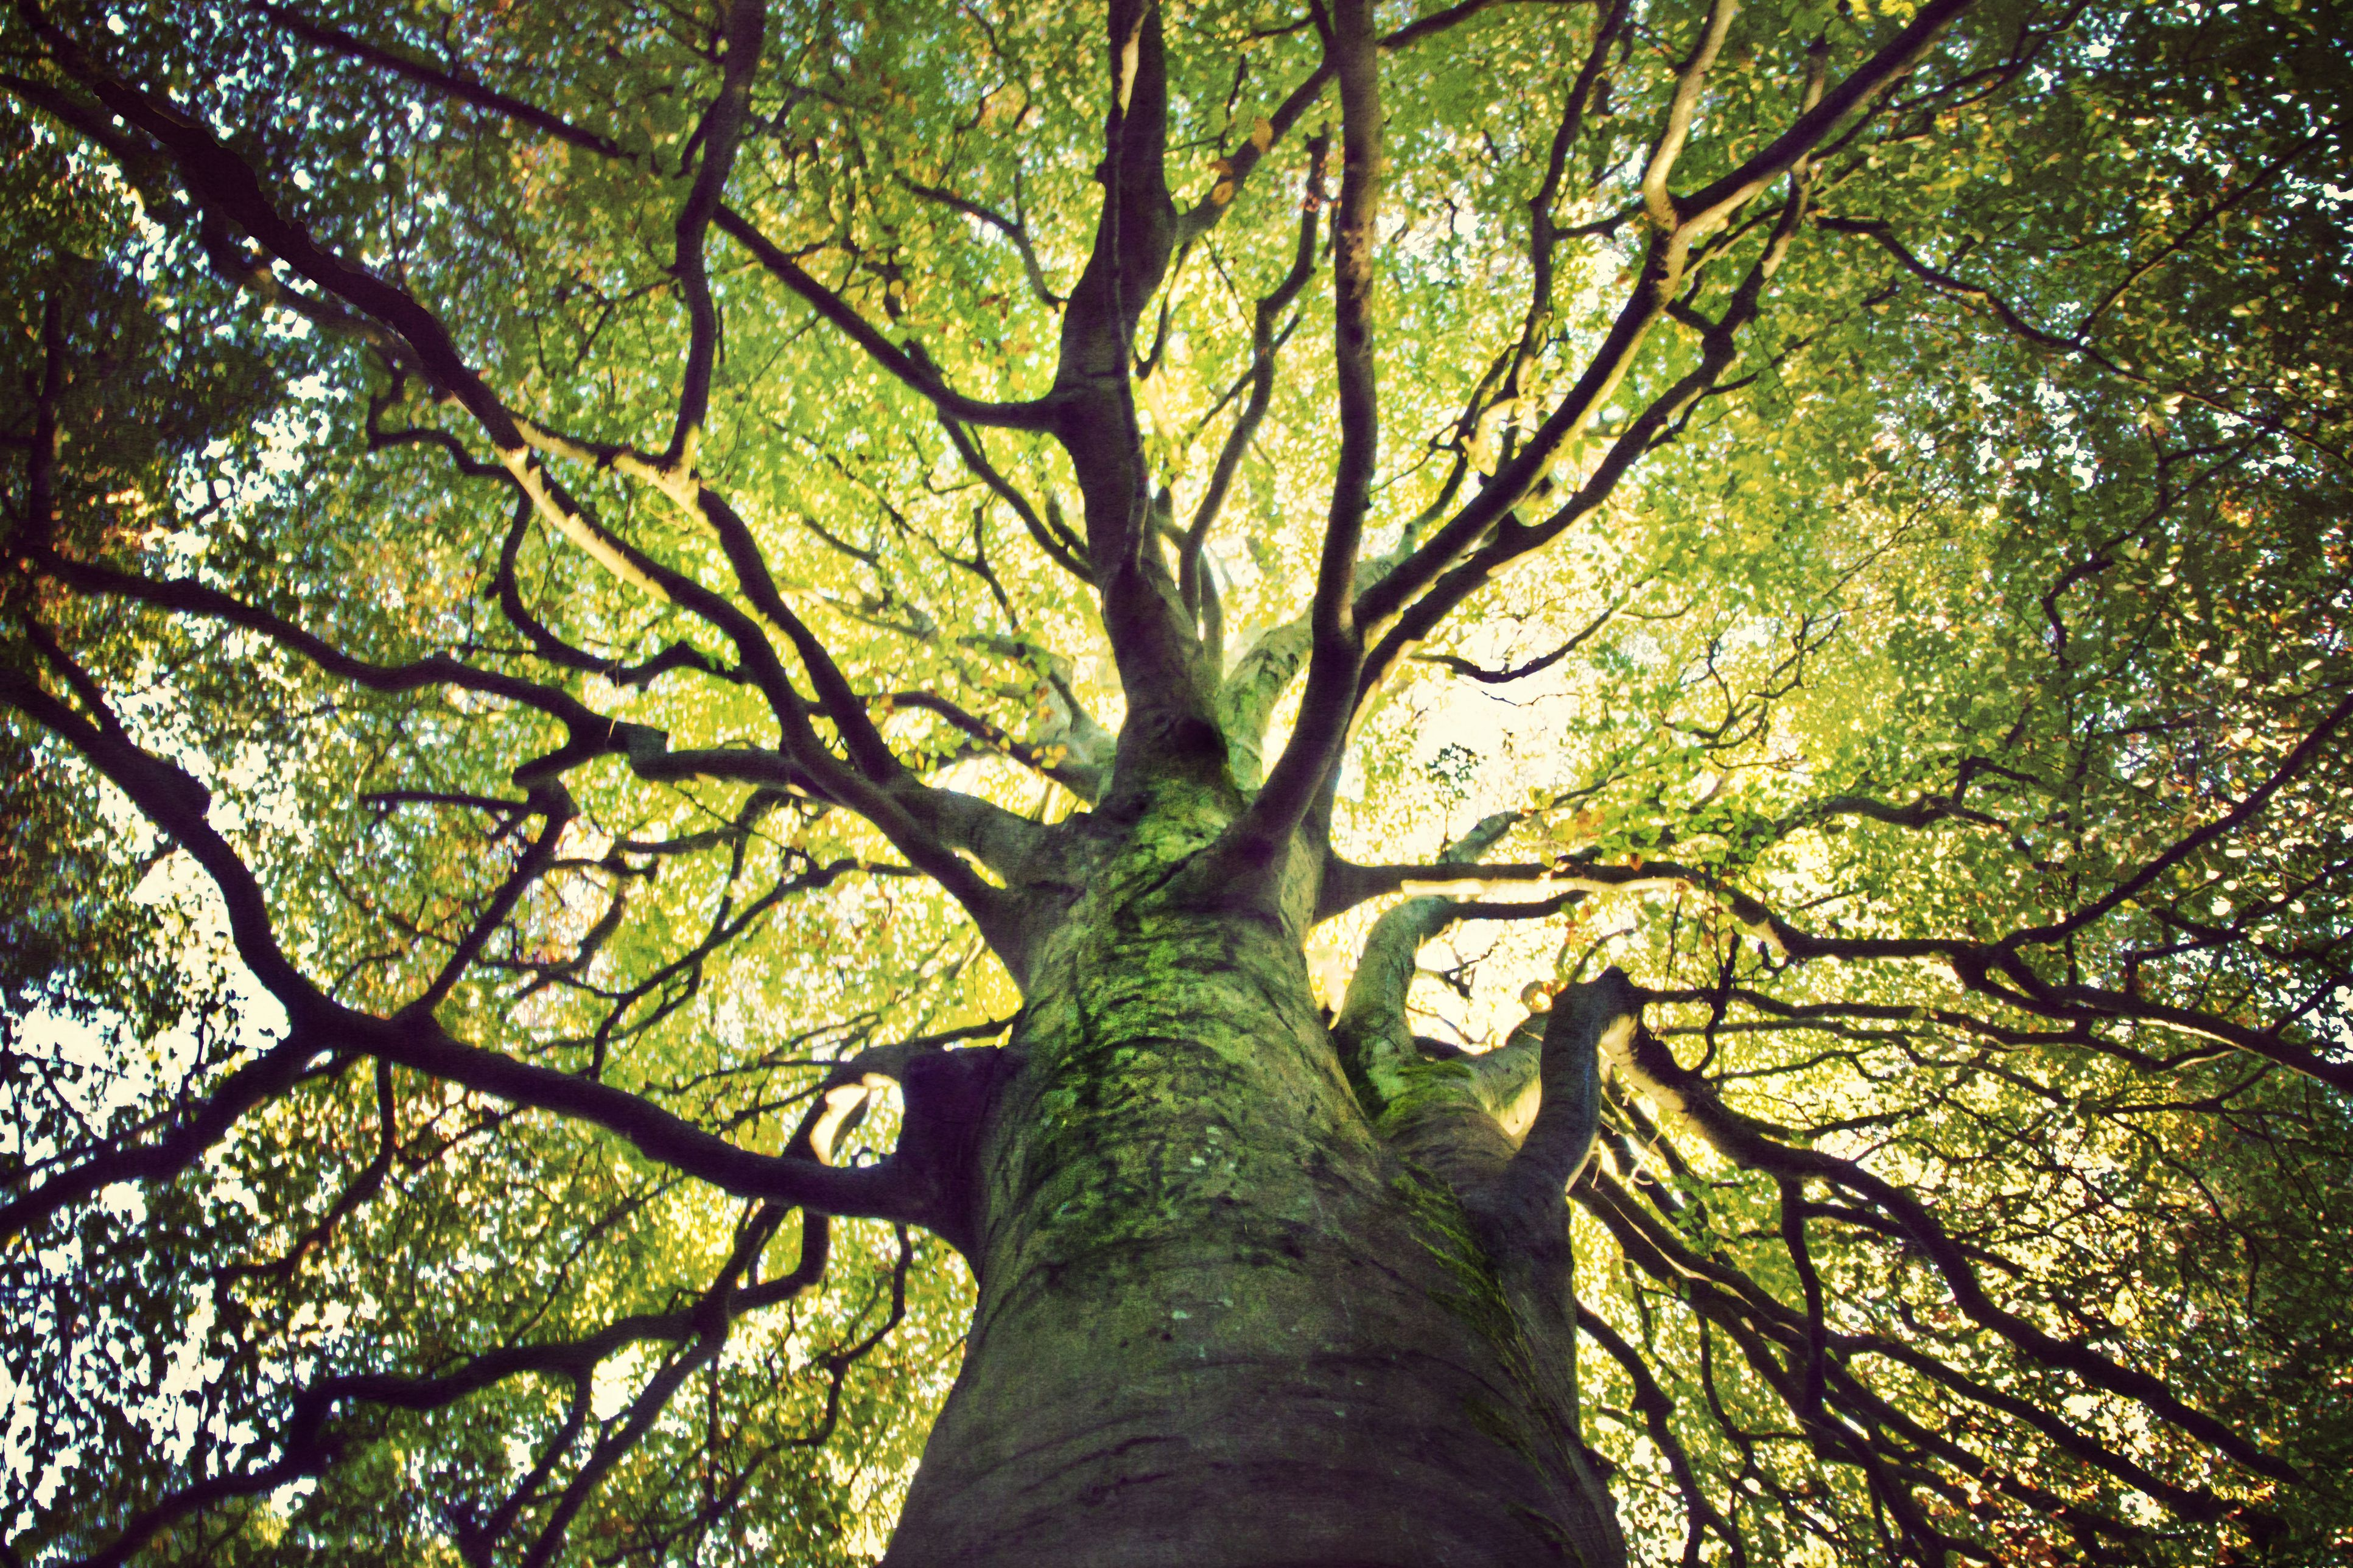 Living And Non Living Cells And Tissues In Trees